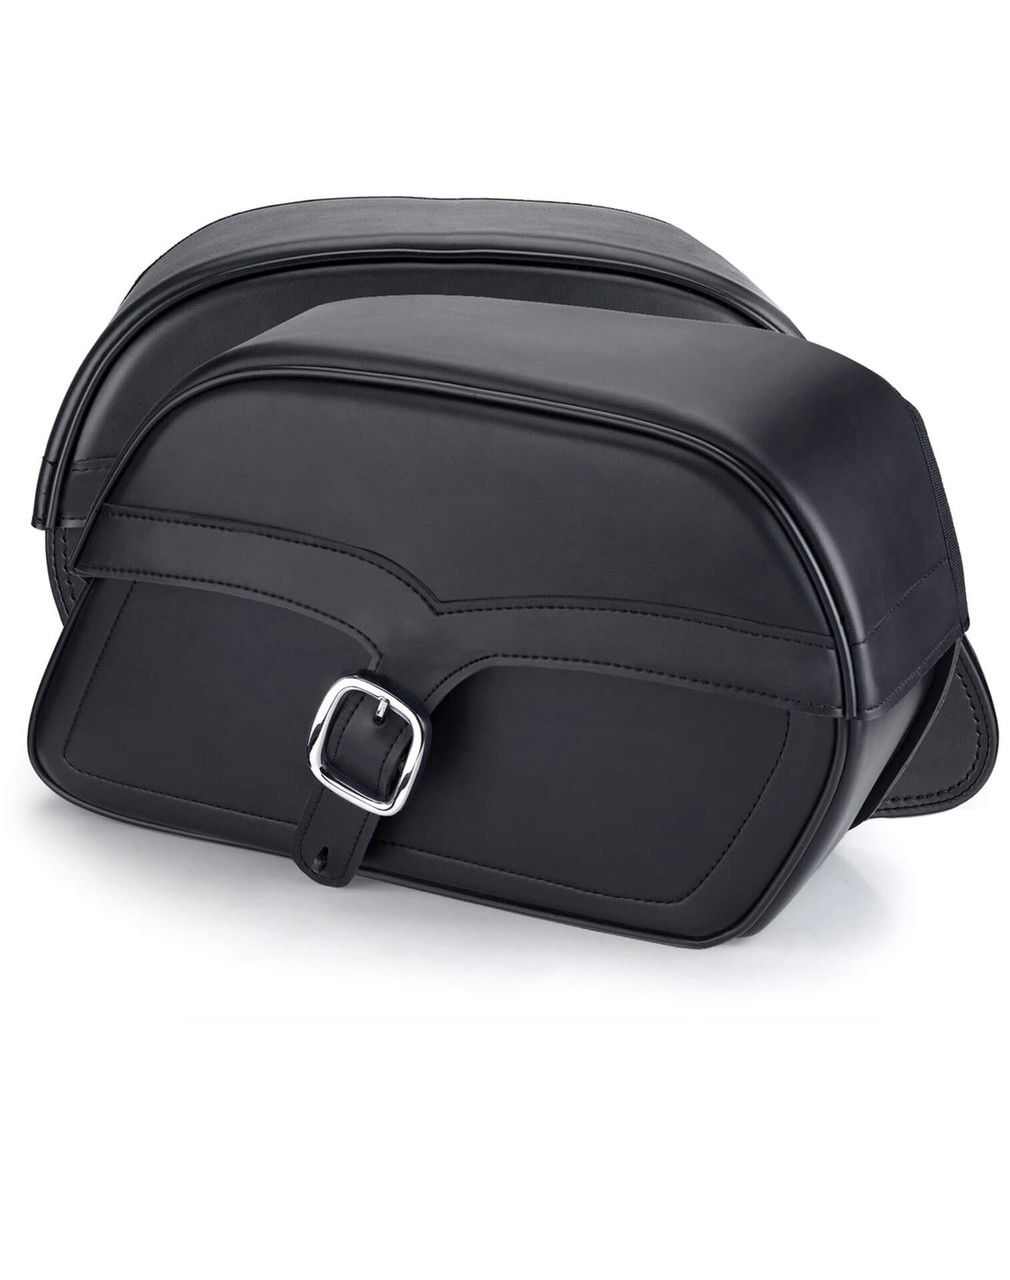 Indian Chief Standard Slanted Single Strap Large Motorcycle Saddlebags Both Bags View